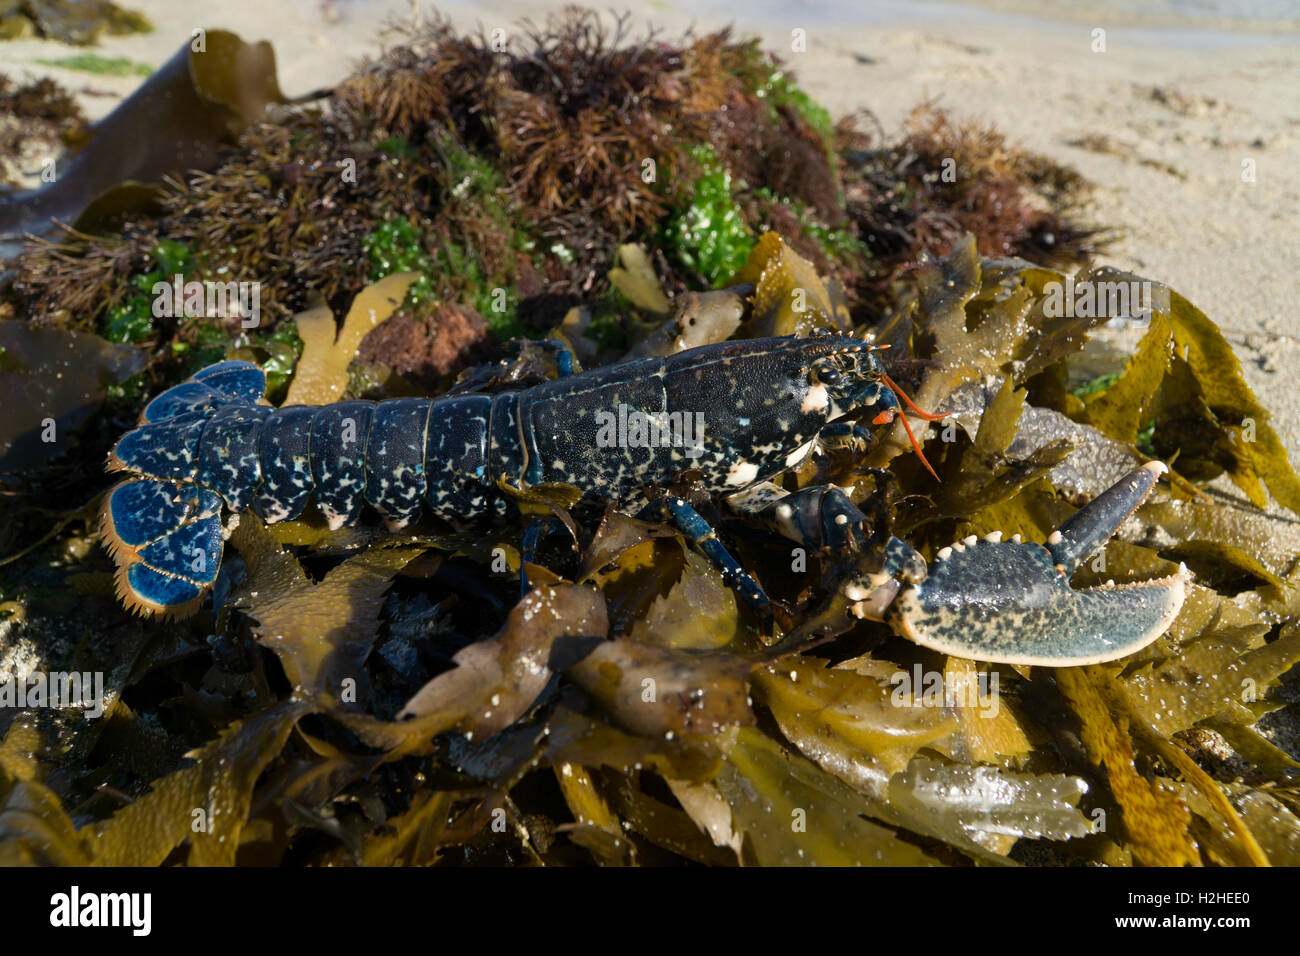 A fresh Lobster caught during low water fishing,Jersey,Channel Islands,released as undersized. - Stock Image